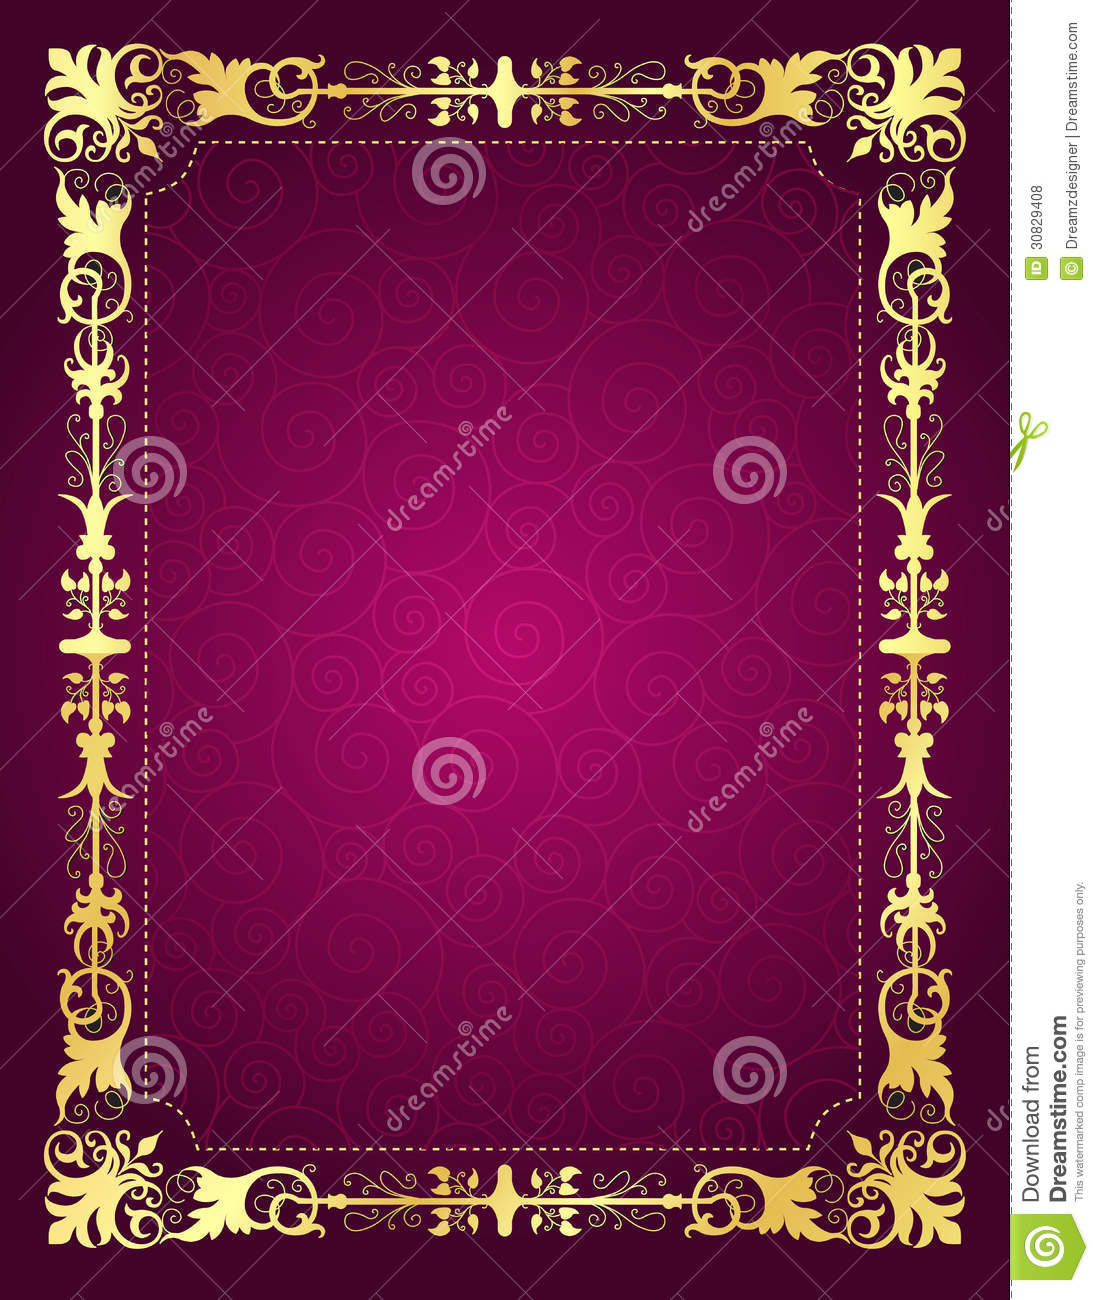 Invitation Card With Ornamental Frame And Backgrou Royalty Free Stock Photos - Image: 30829408